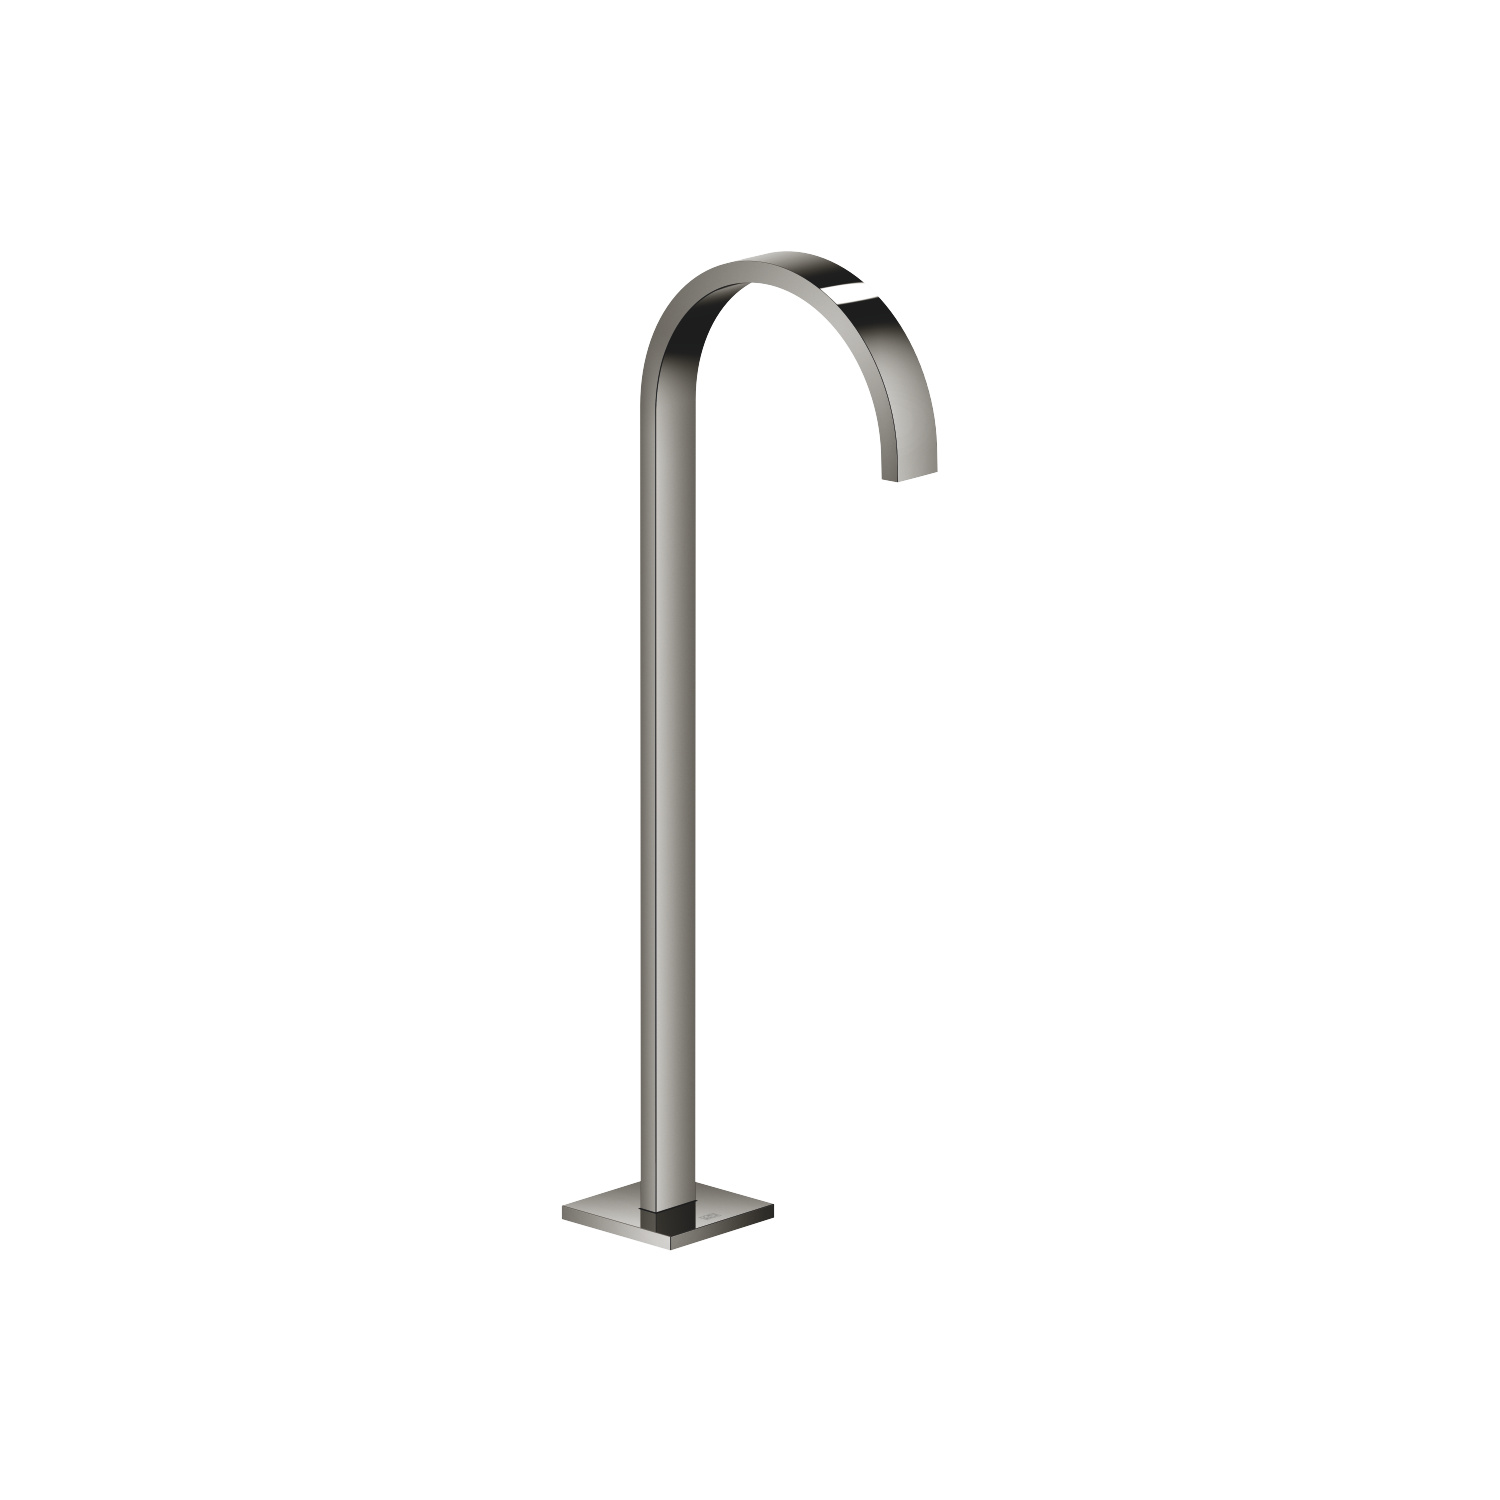 bath spout without diverter for free-standing assembly - platinum